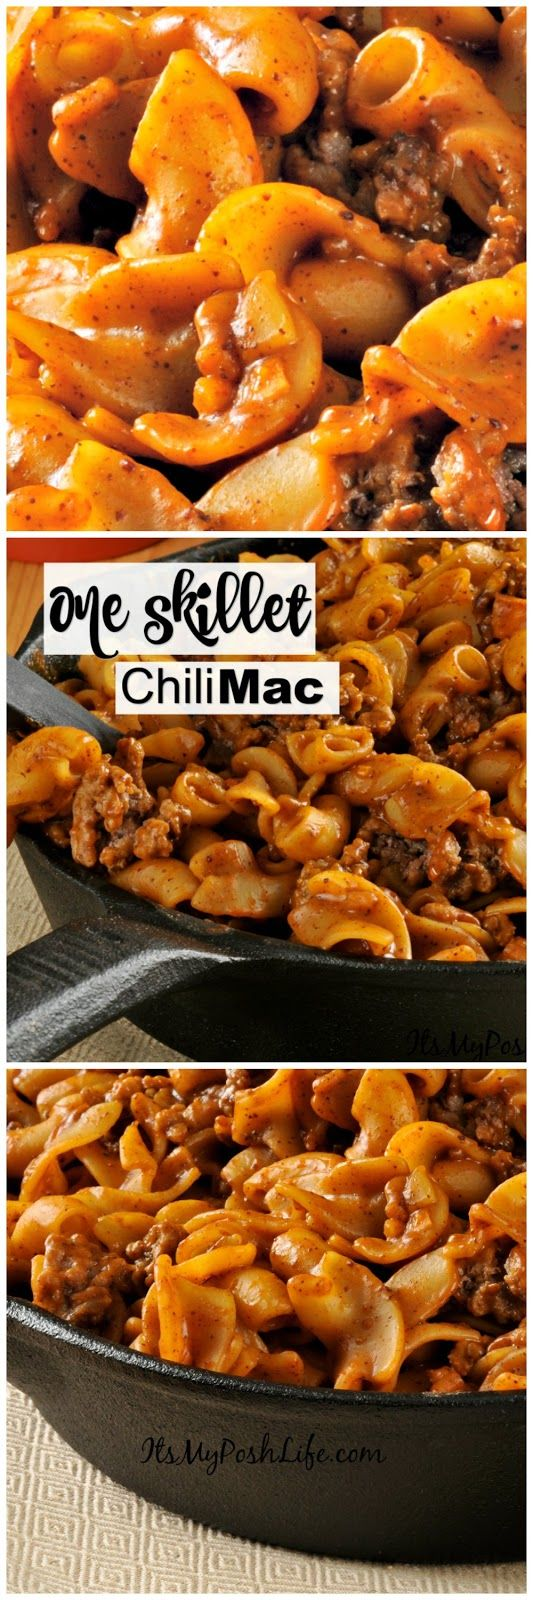 easy!! I like that! No Sweat One Skillet Chili Mac http://poshonabudget.com/2017/02/no-sweat-one-skillet-chili-mac.html via @poshonabudget